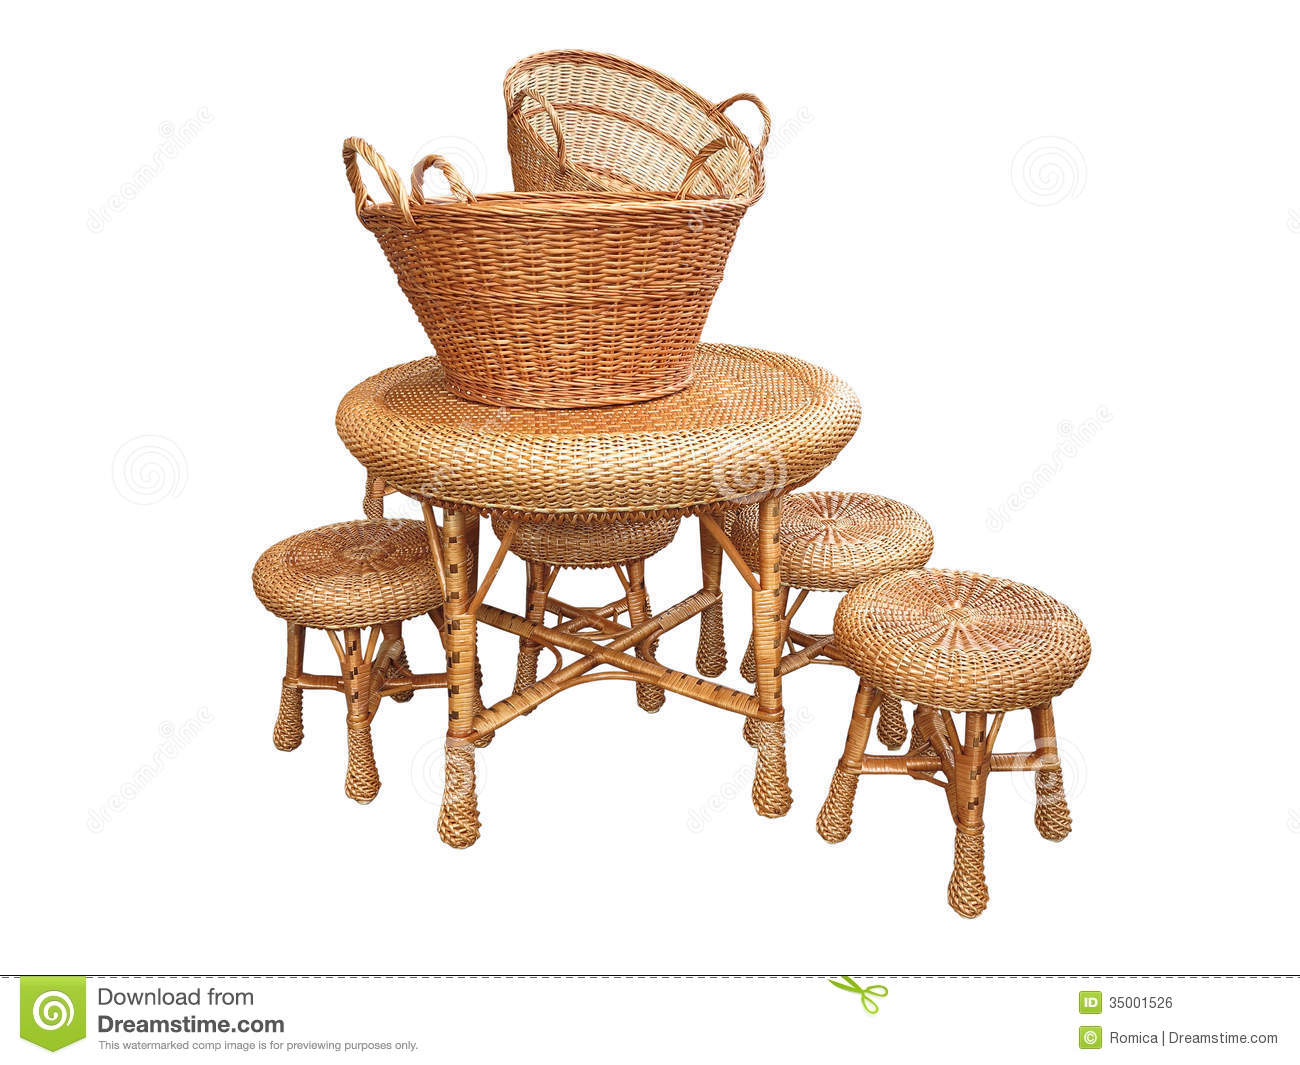 white wicker chairs and table kitchen stuff plus dining chair furniture baskets isolated over